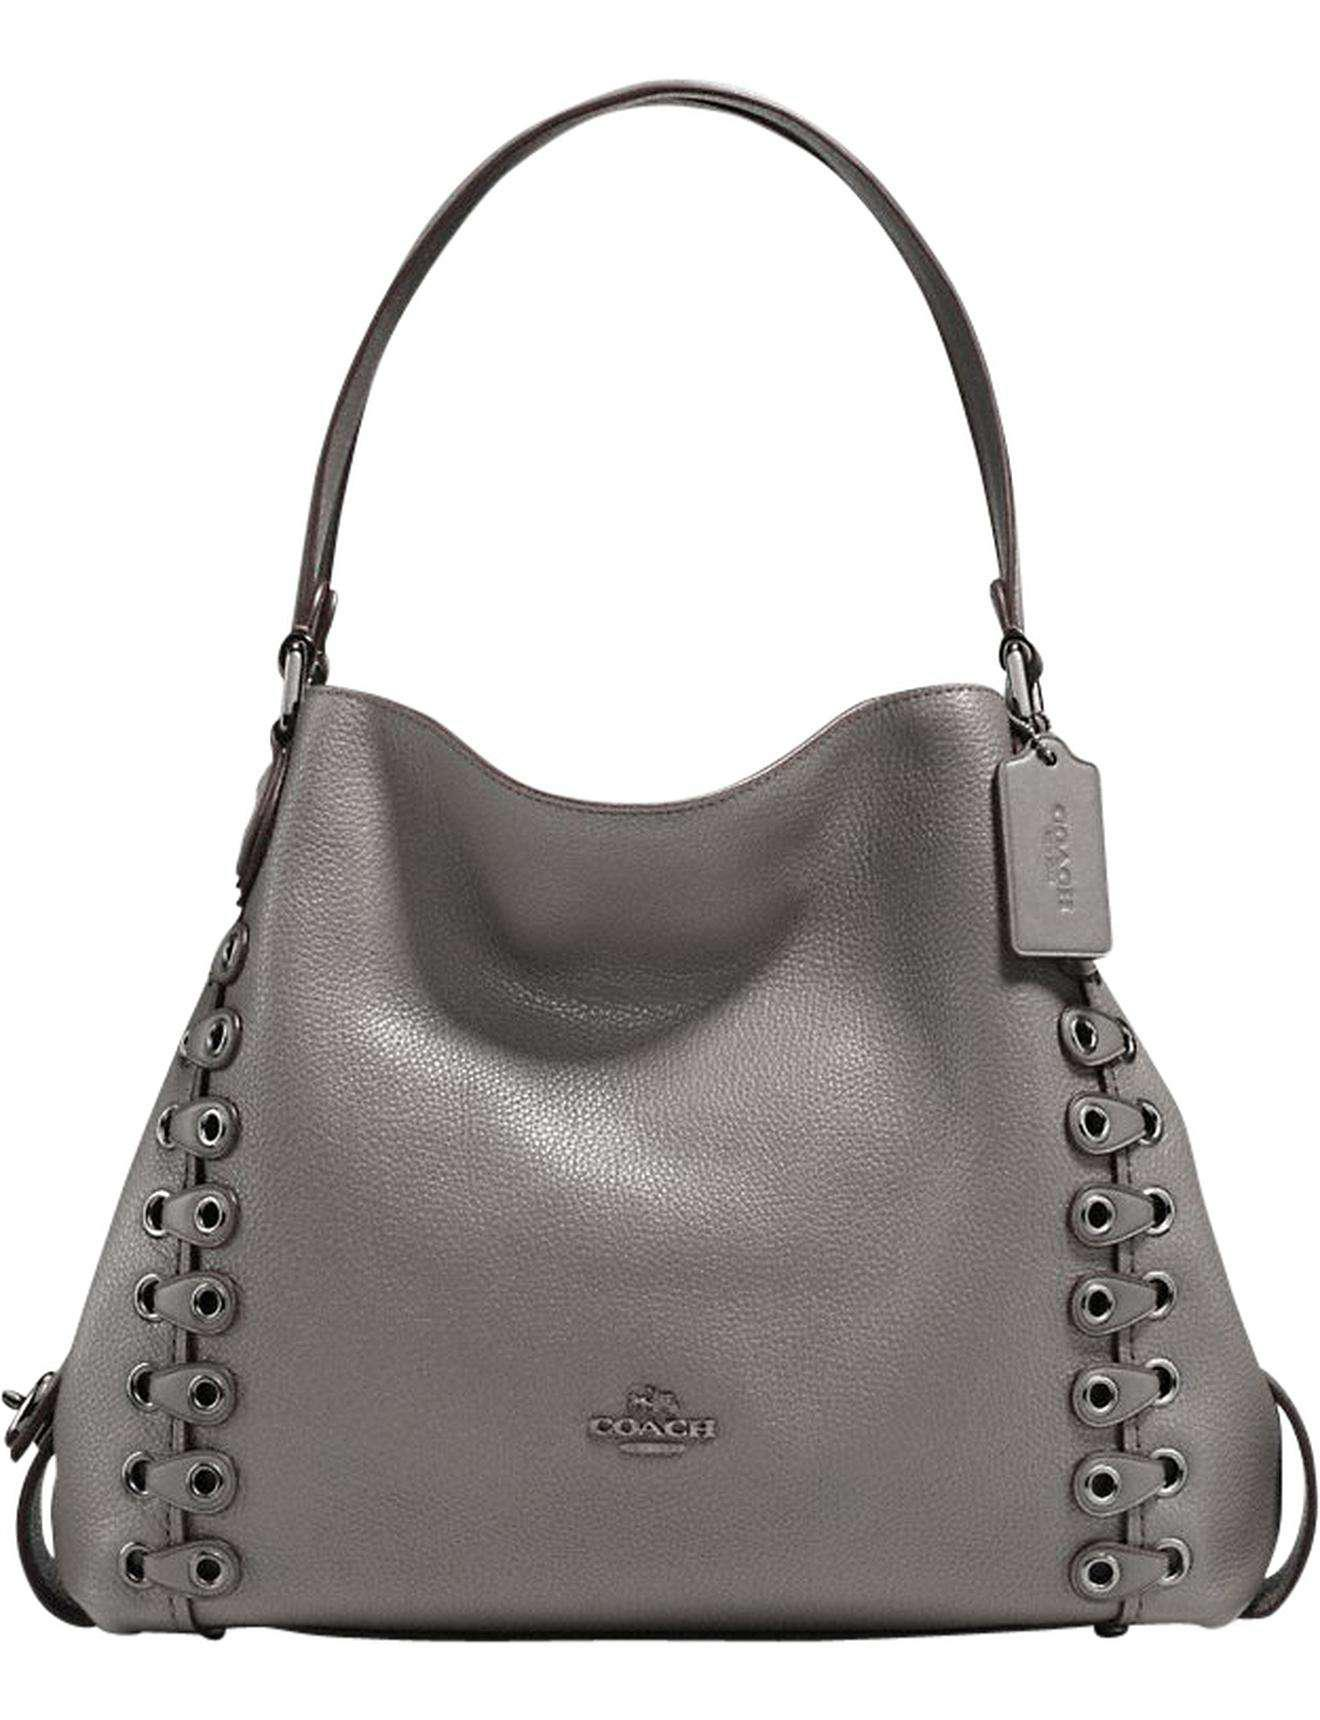 7c8265baa2f COACH Edie Shoulder Bag 31 With Link Detail in Gray - Lyst